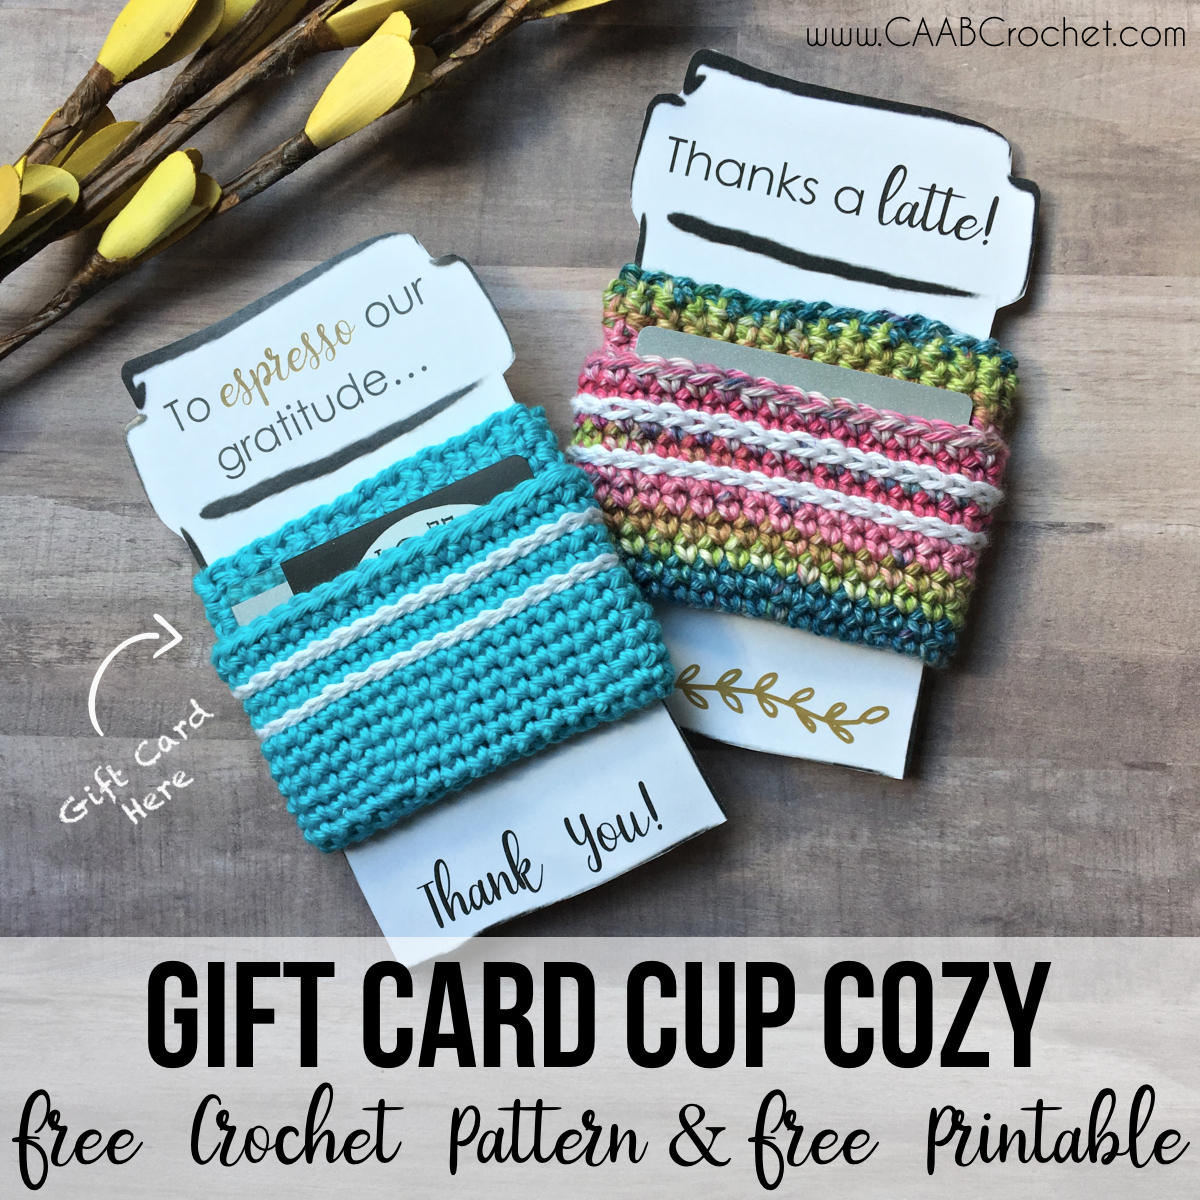 Starbucks Cup Cozy Crochet Pattern Best Decoration